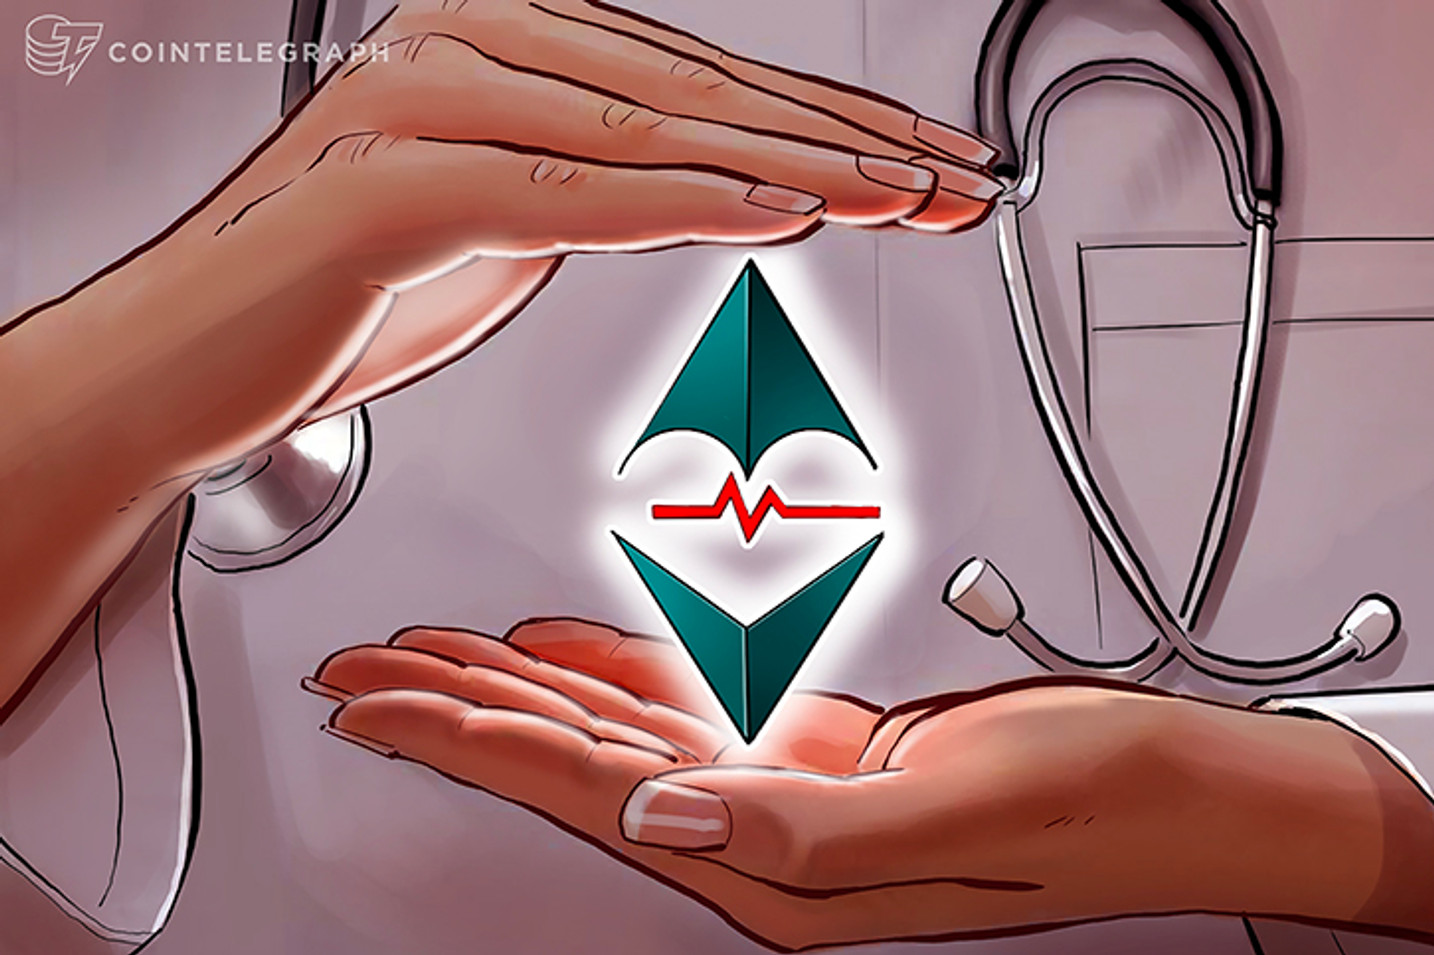 Startup Seeks to Lower Costs, Improve Outcomes by Tokenizing Healthcare